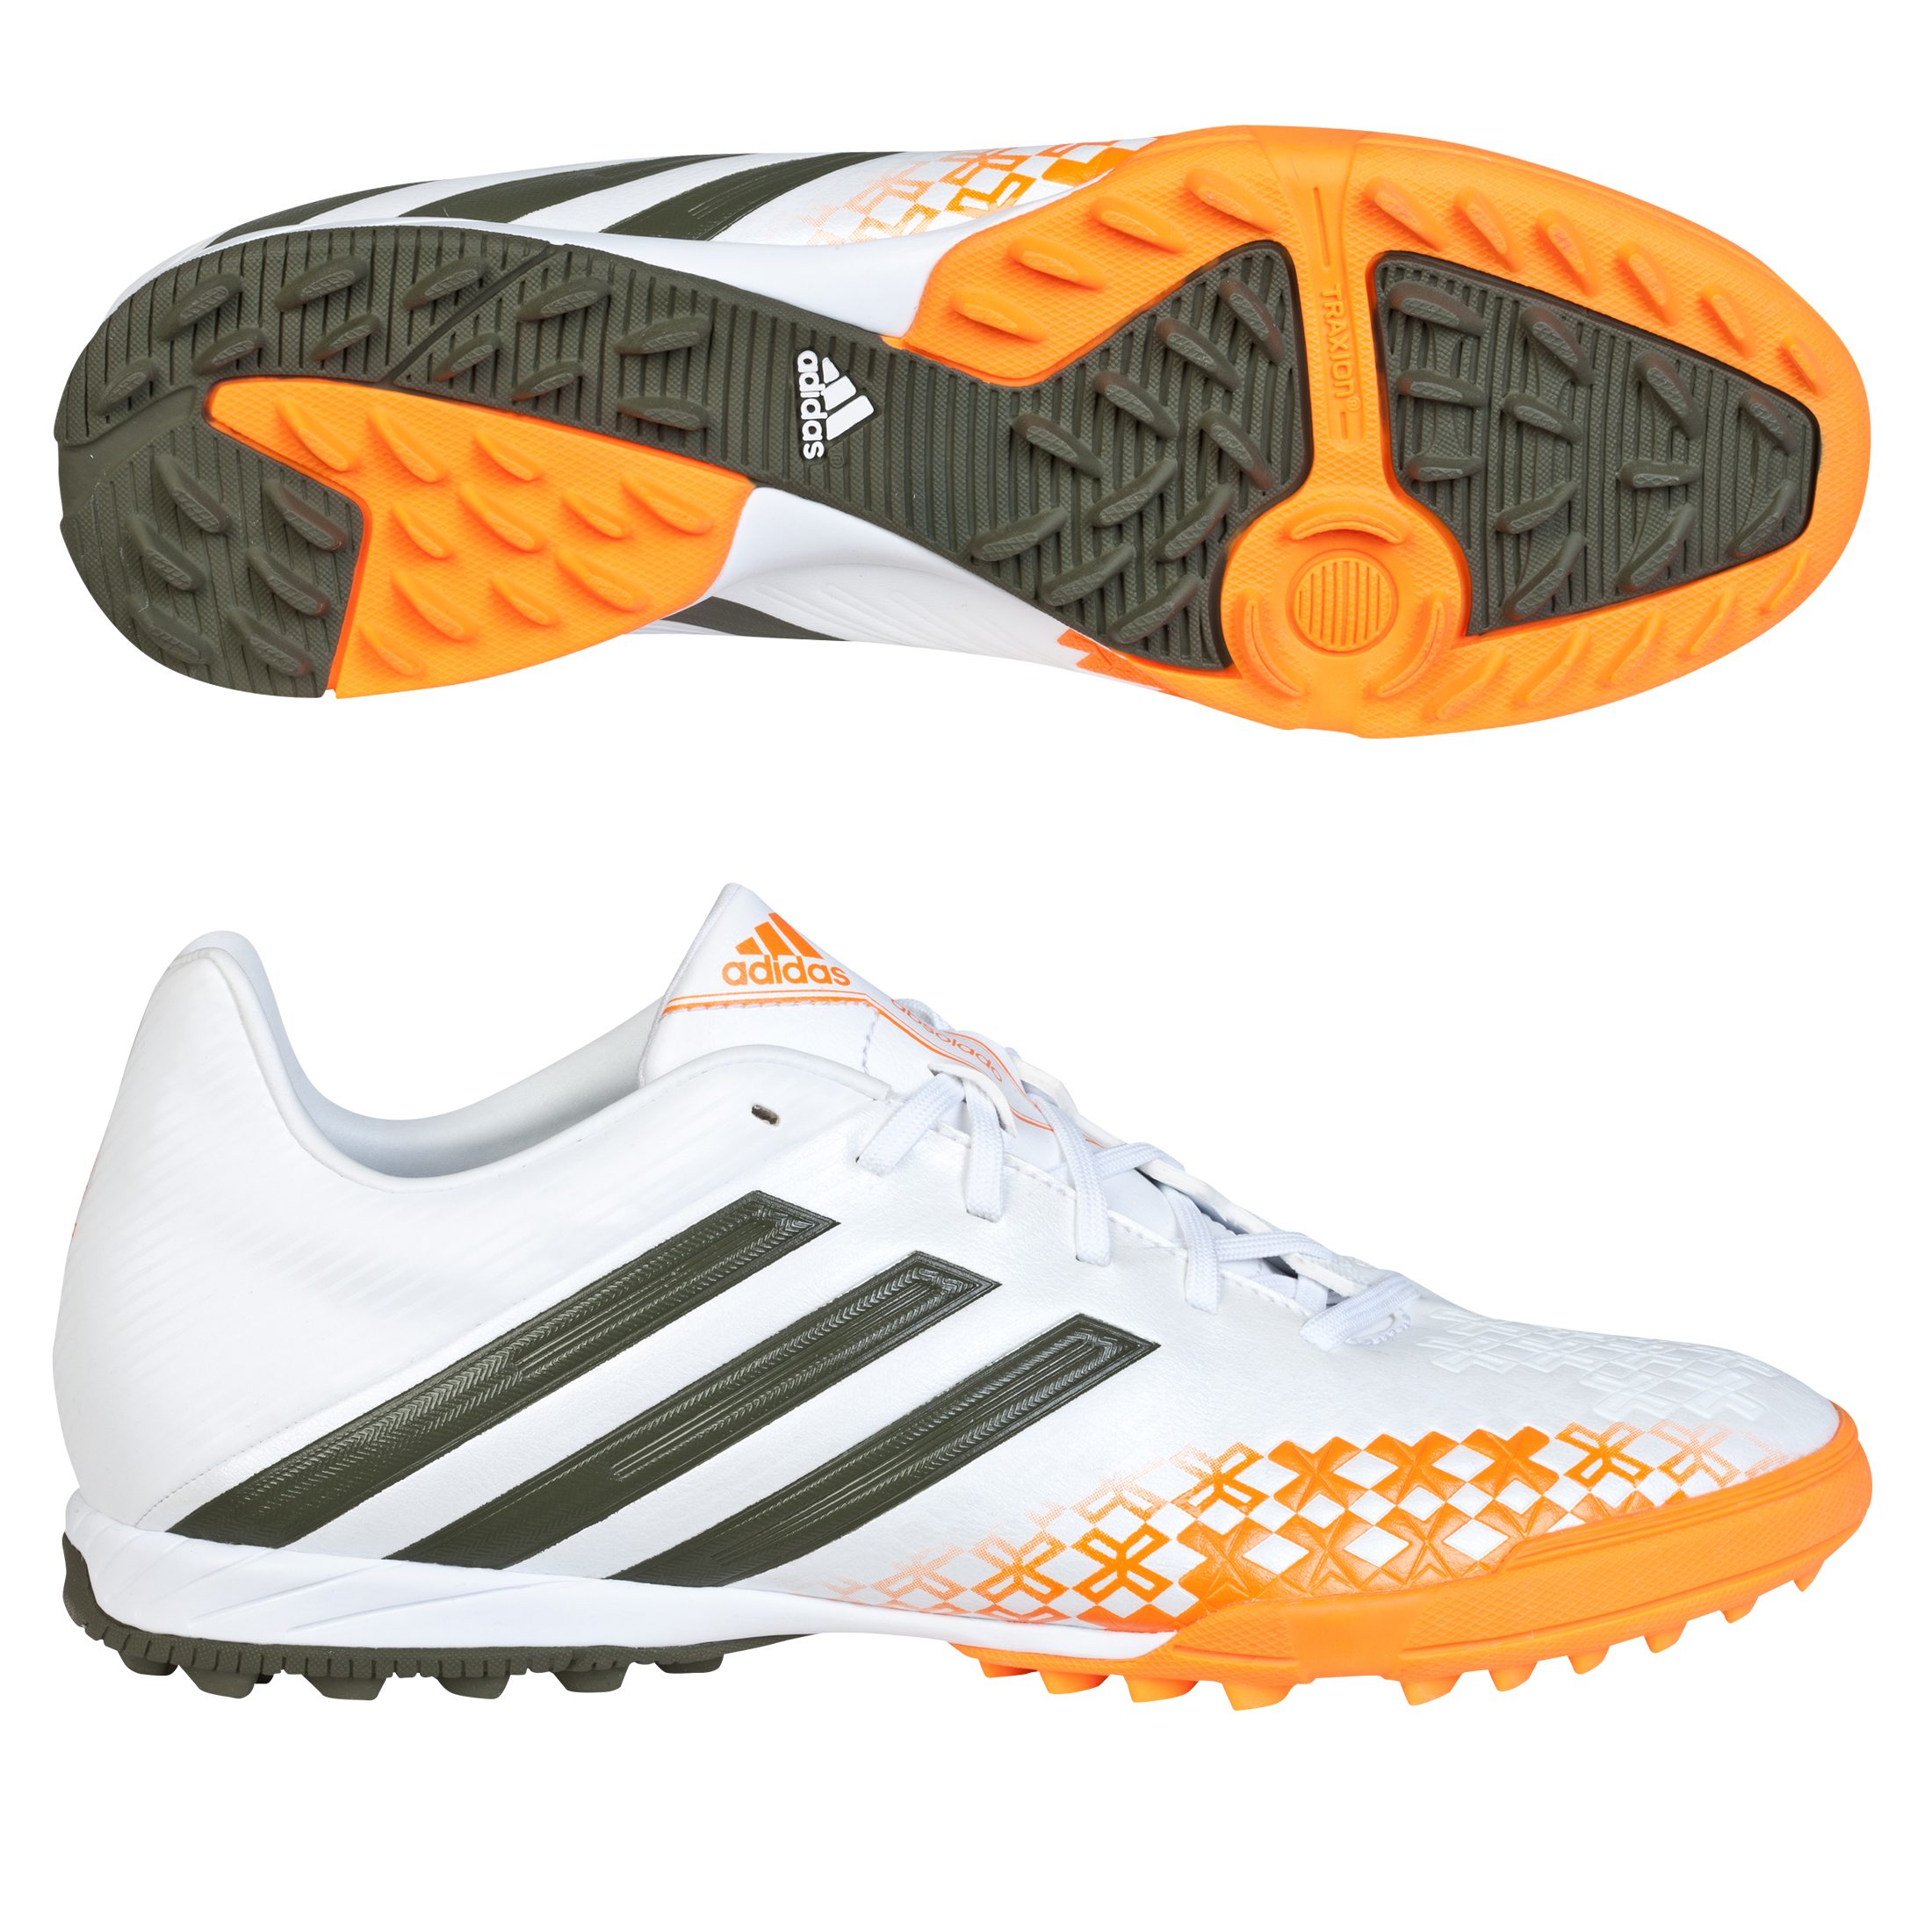 adidas P Absolado LZ TRX Astroturf White